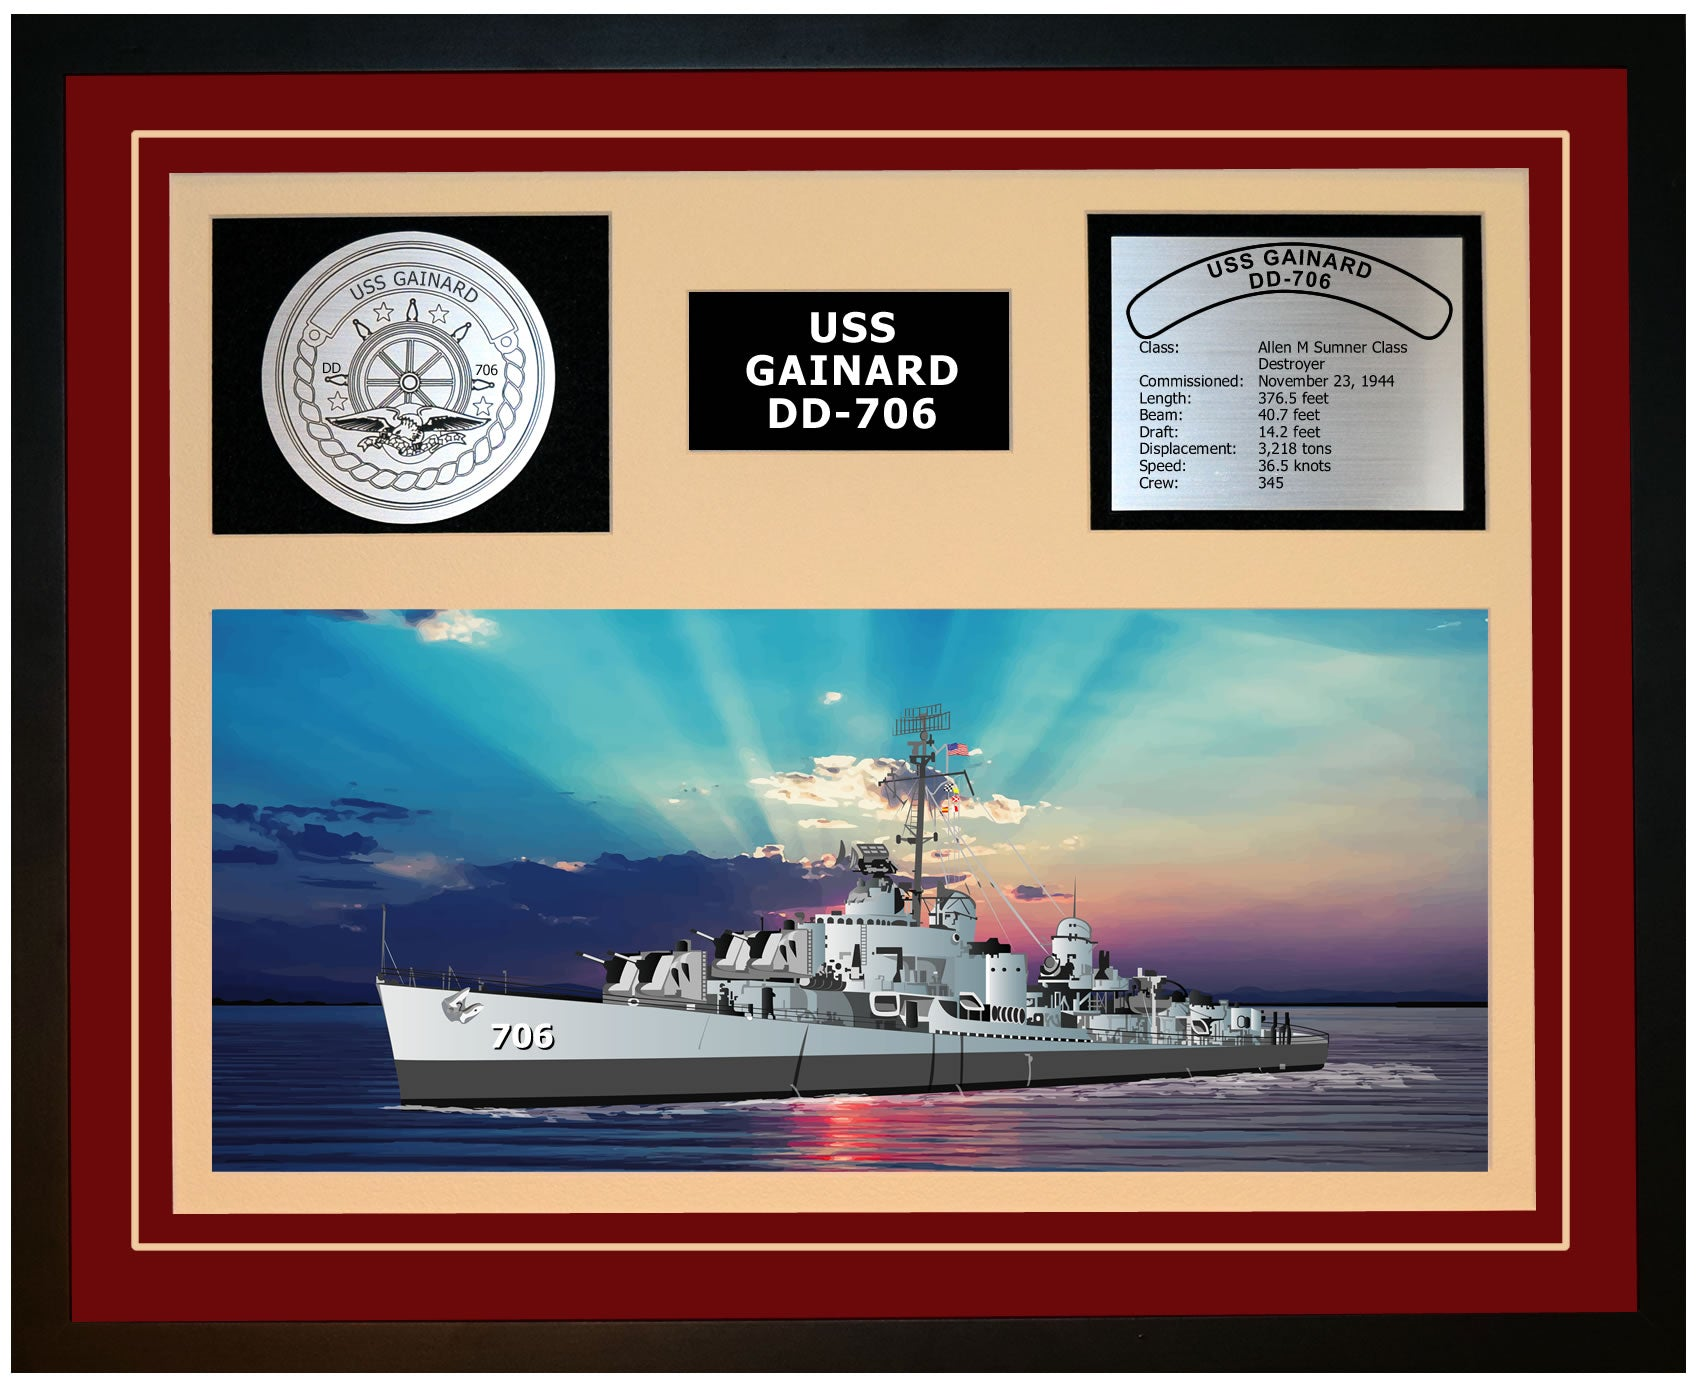 USS GAINARD DD-706 Framed Navy Ship Display Burgundy